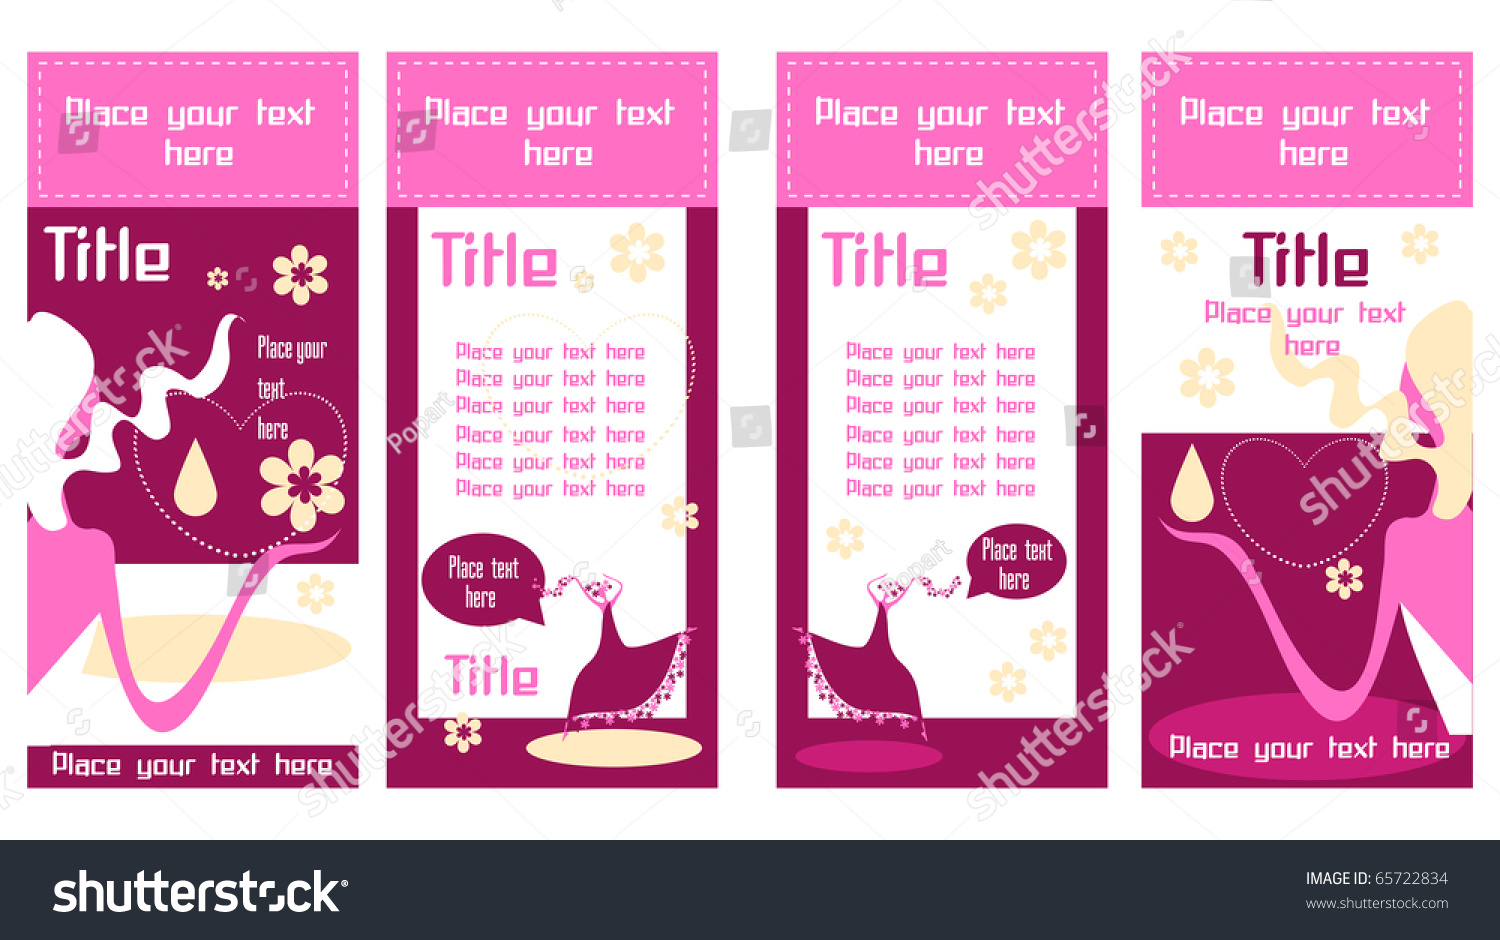 Eco Green Color Banner Business Cards Stock Photo (Photo, Vector ...